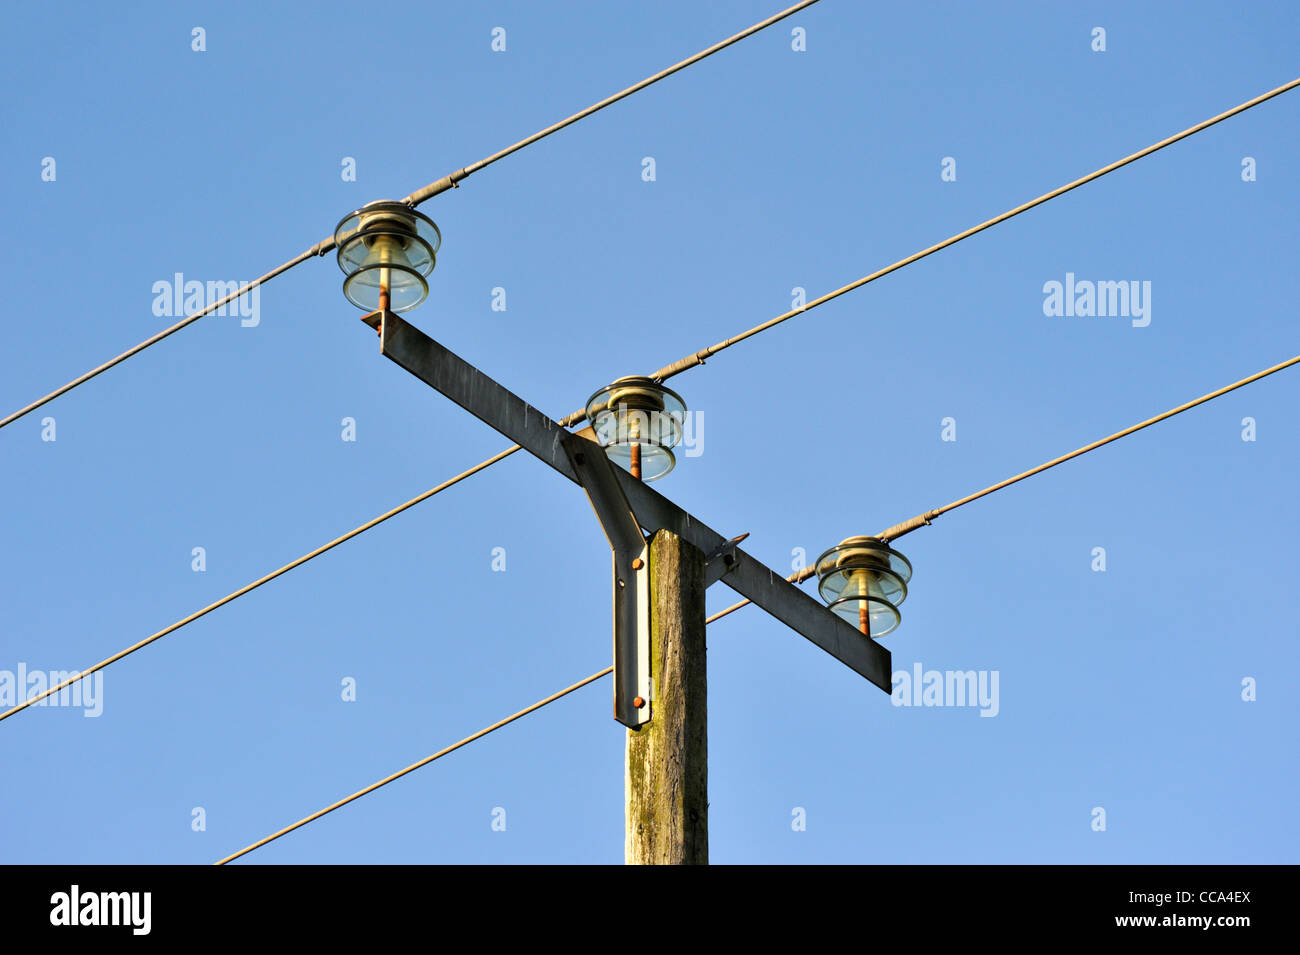 Electric Poles Power Lines : Overhead low voltage electrical power lines on wooden pole